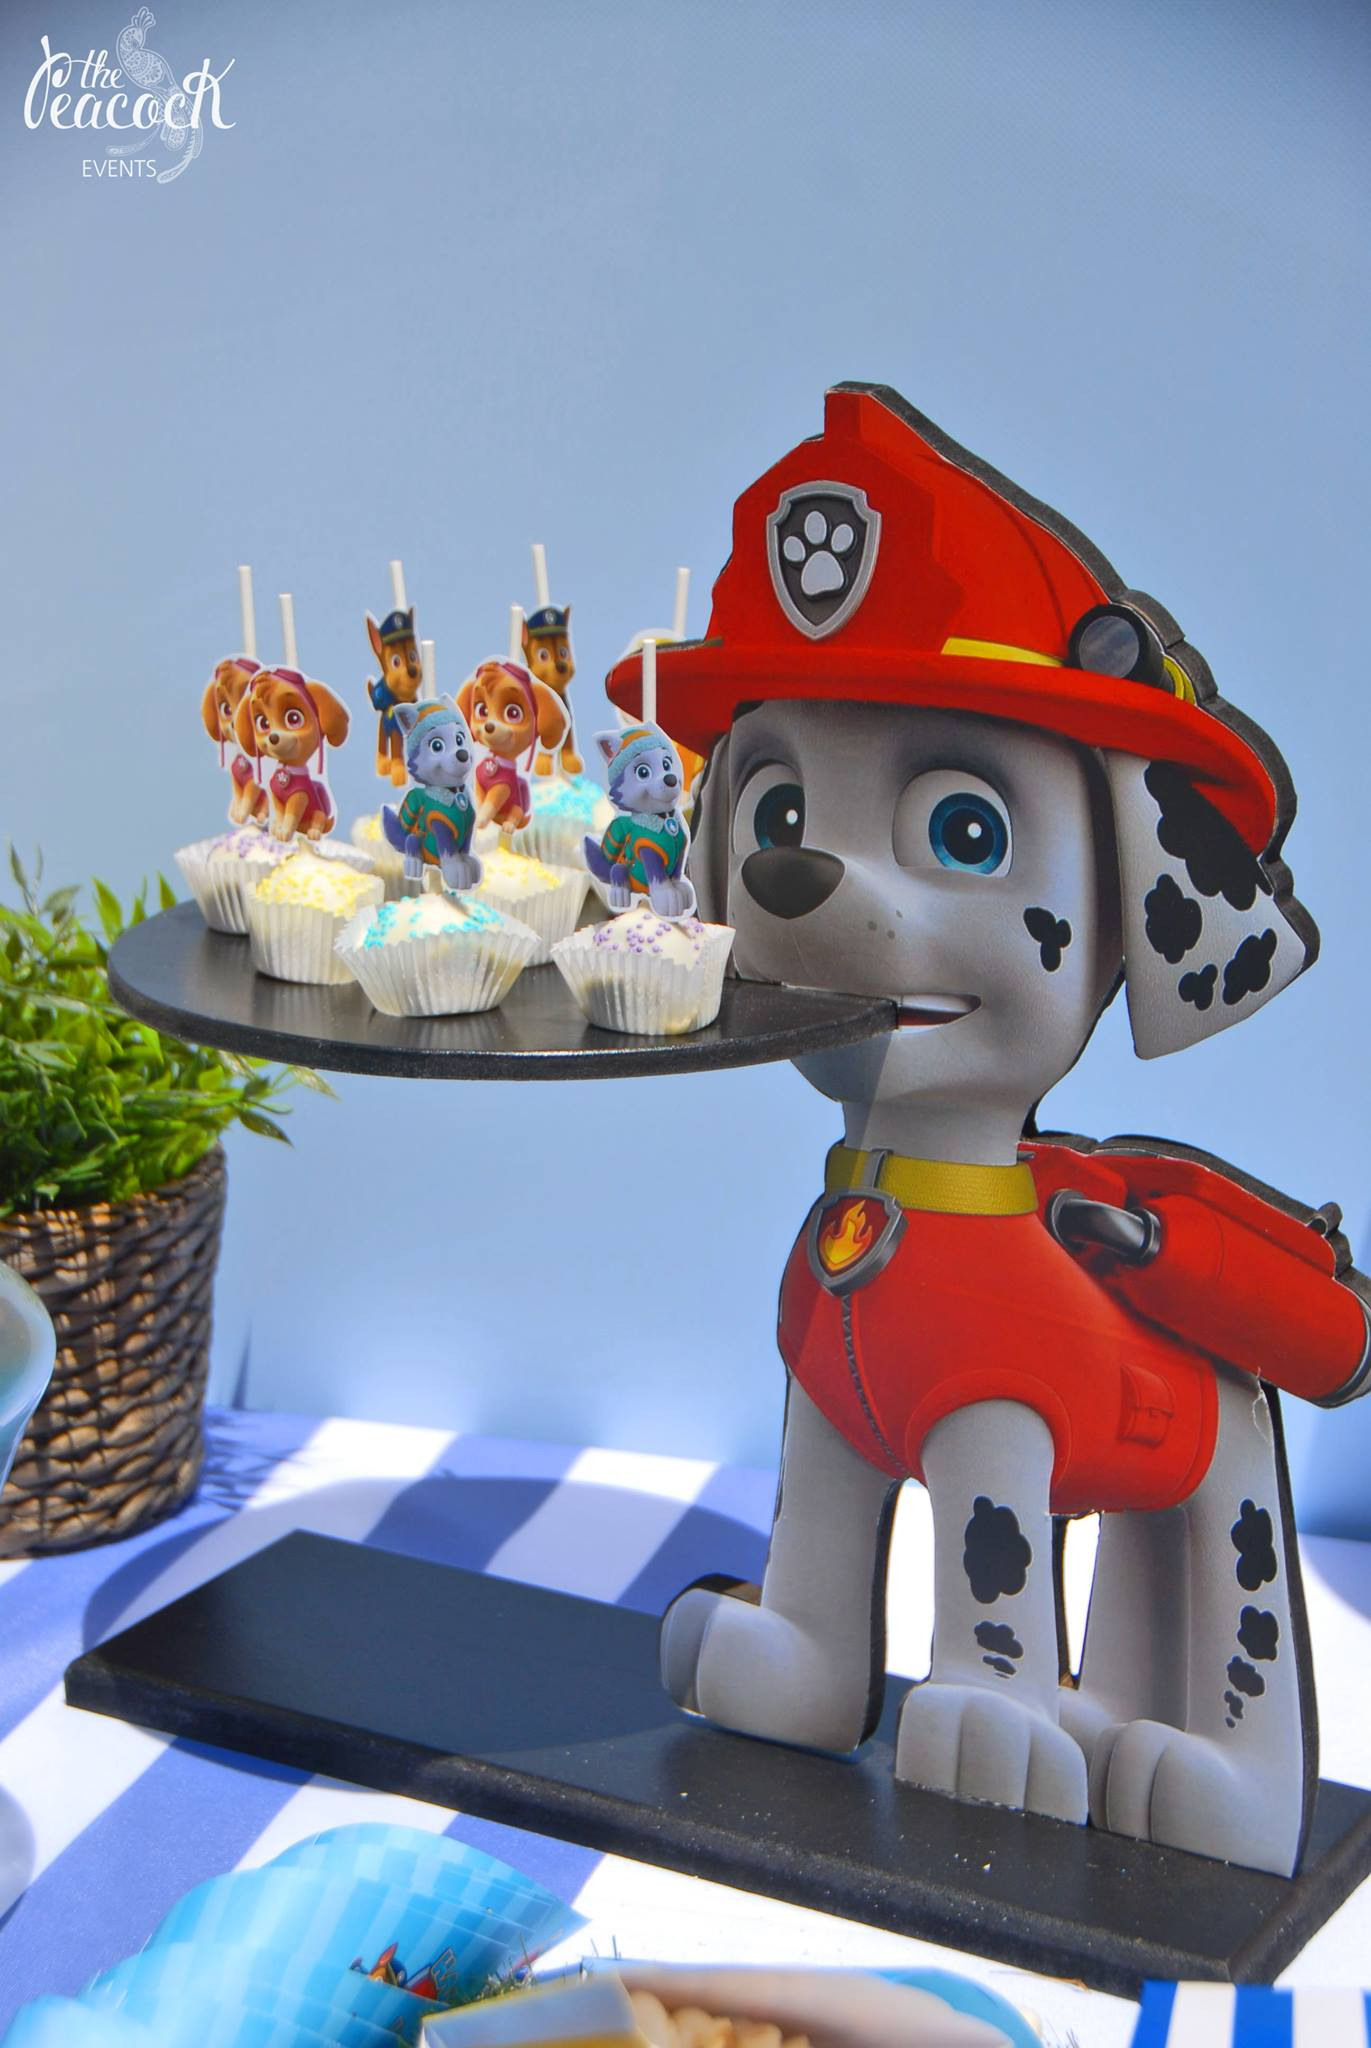 Cupcake stand sweets paw patrol marshall